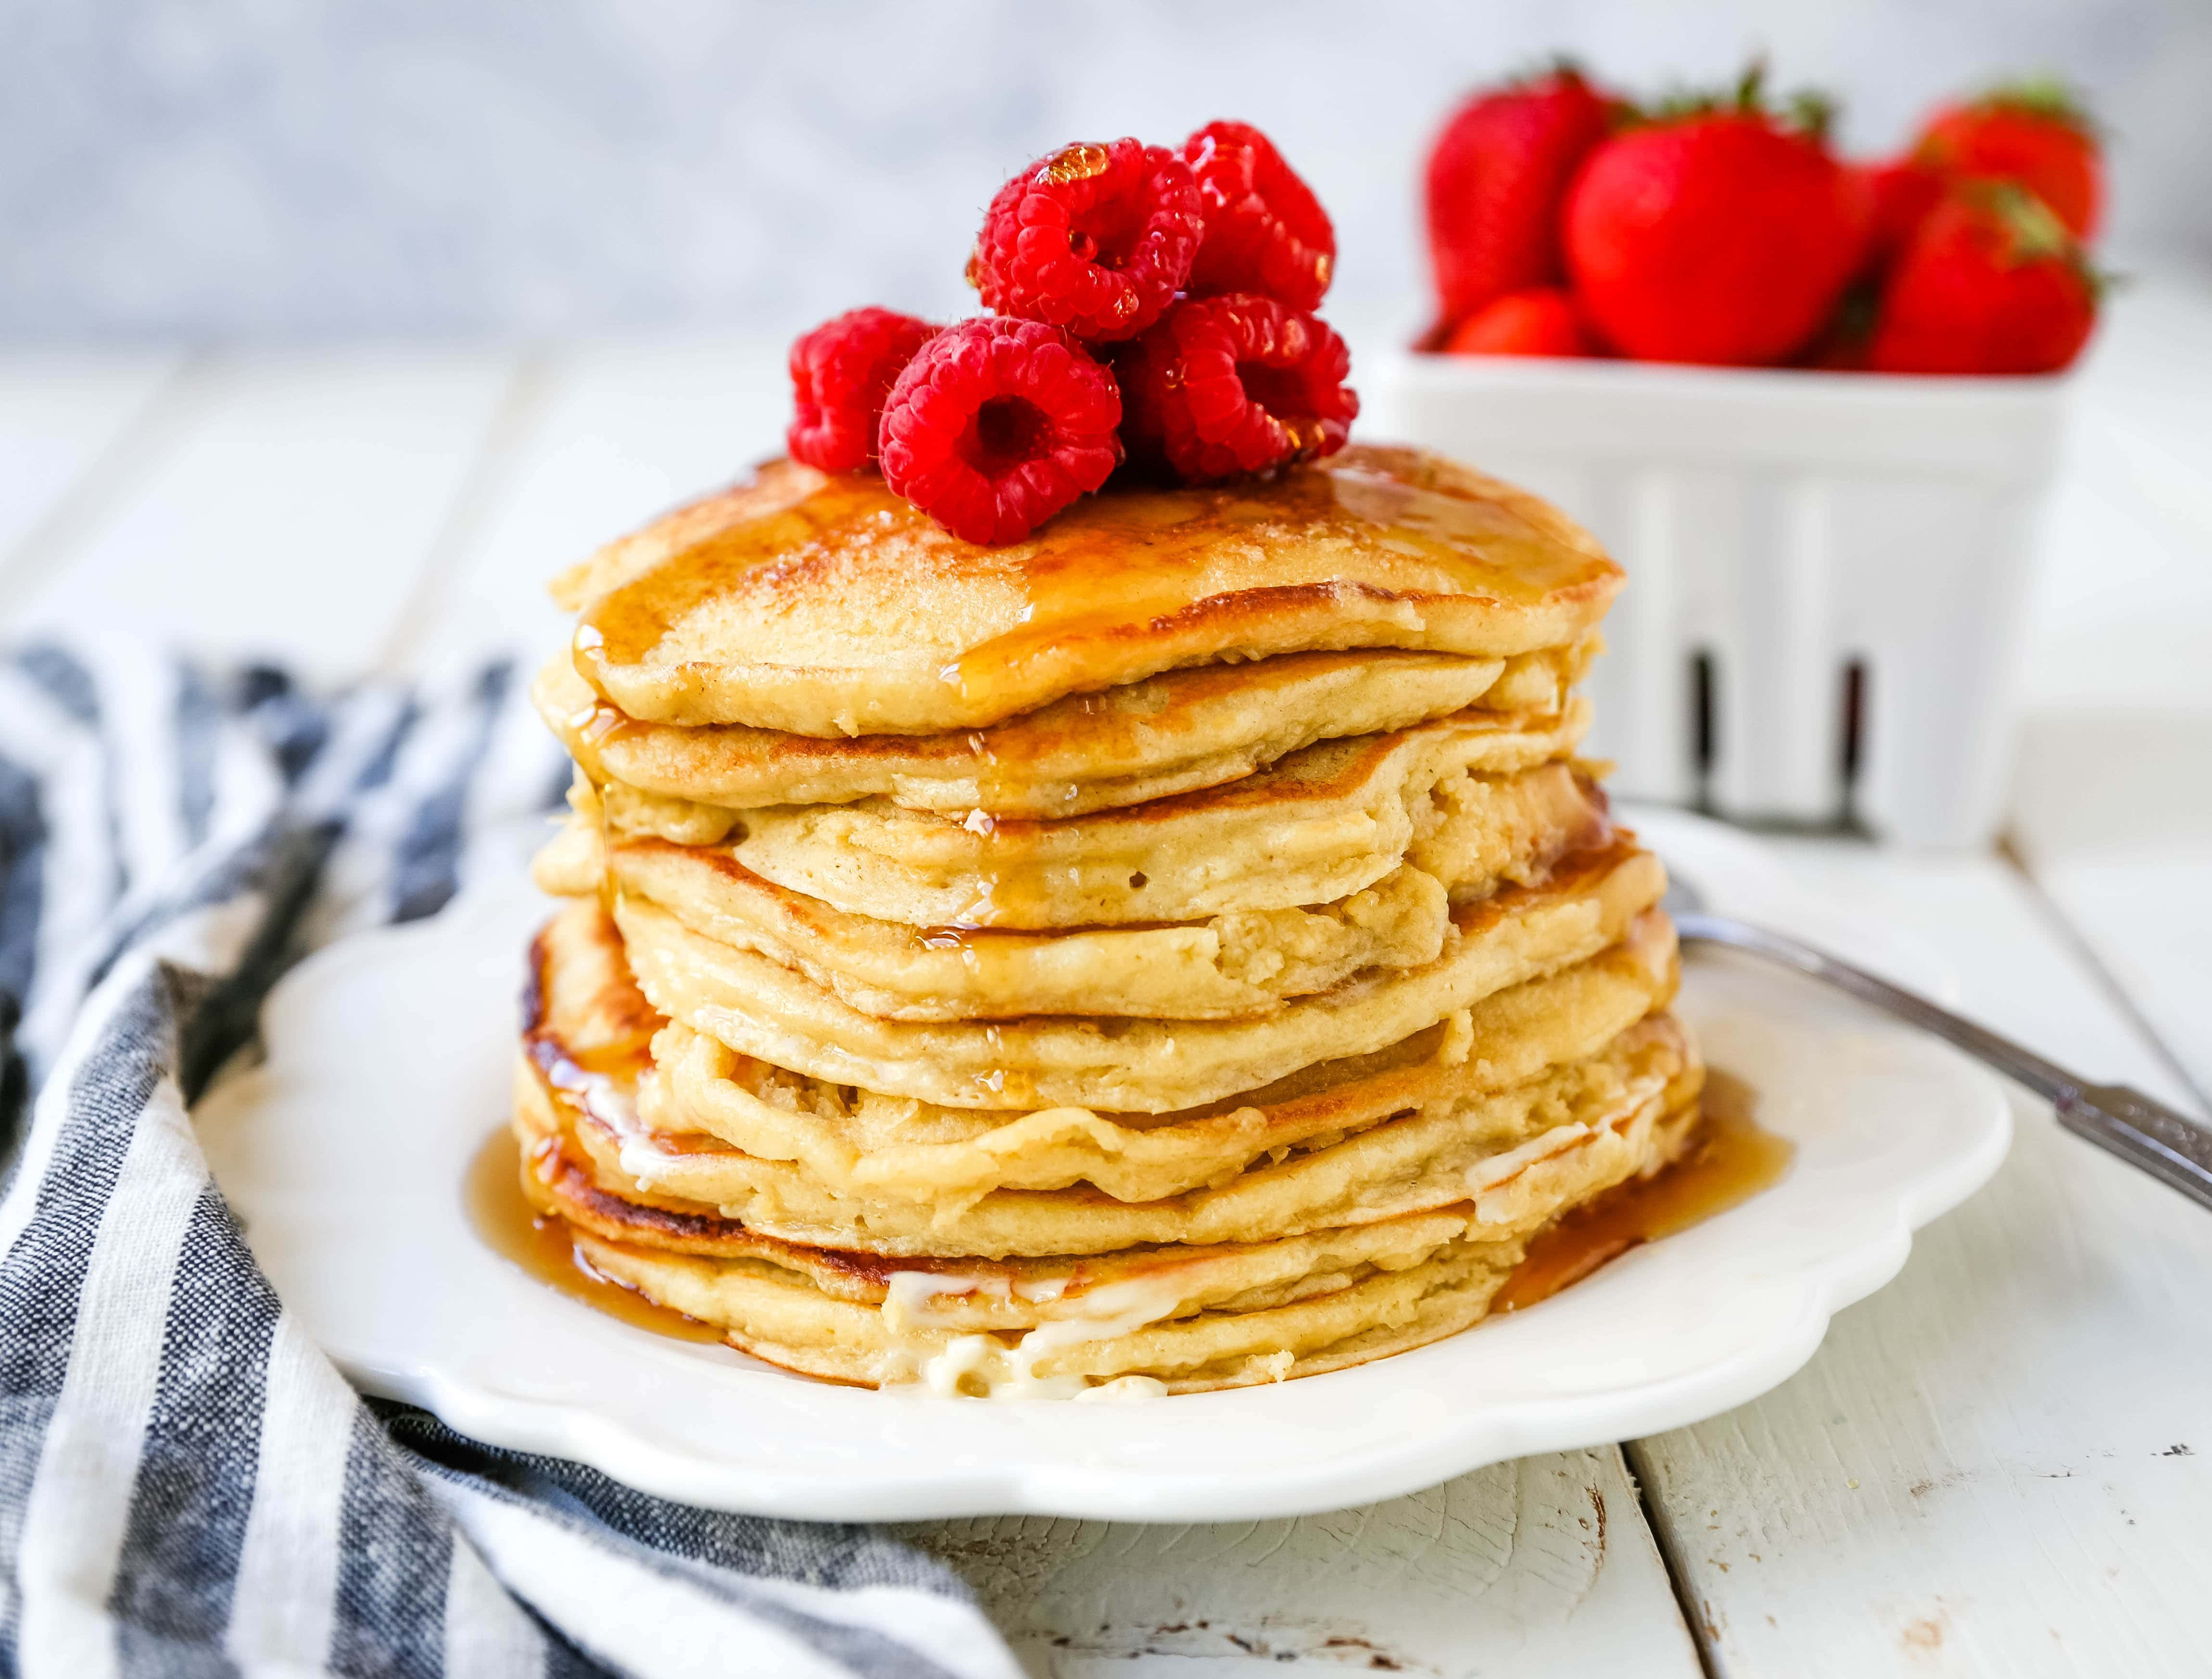 Remarkable Cottage Cheese Pancakes Download Free Architecture Designs Intelgarnamadebymaigaardcom